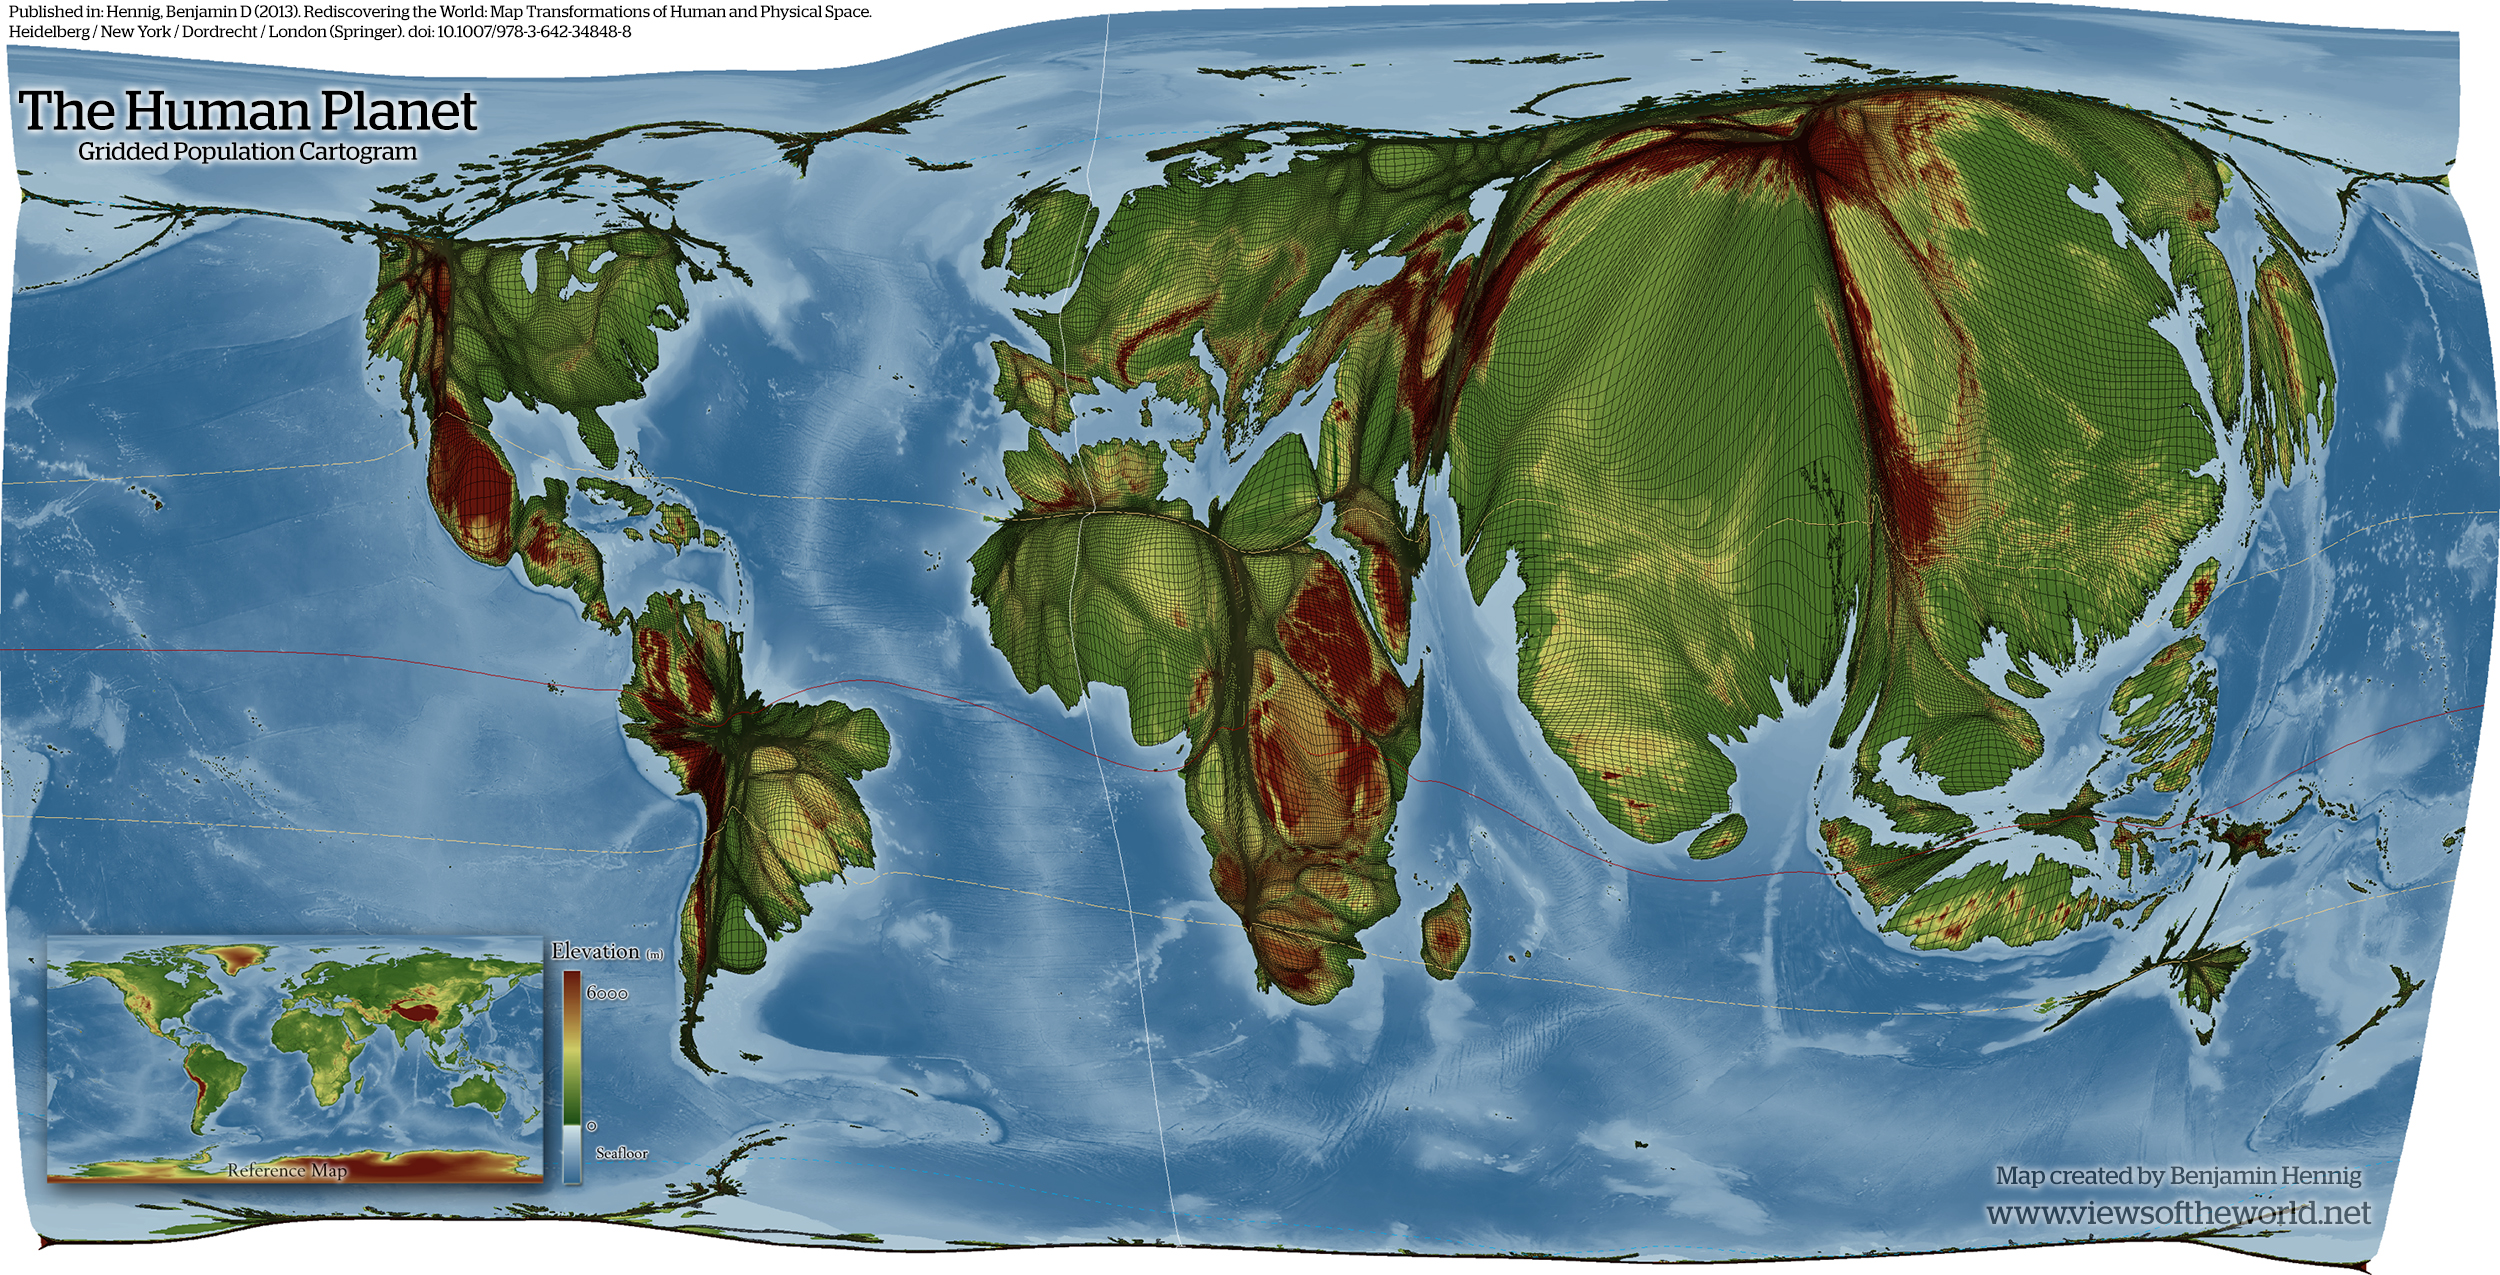 Mapping the Anthropocene Views of the World